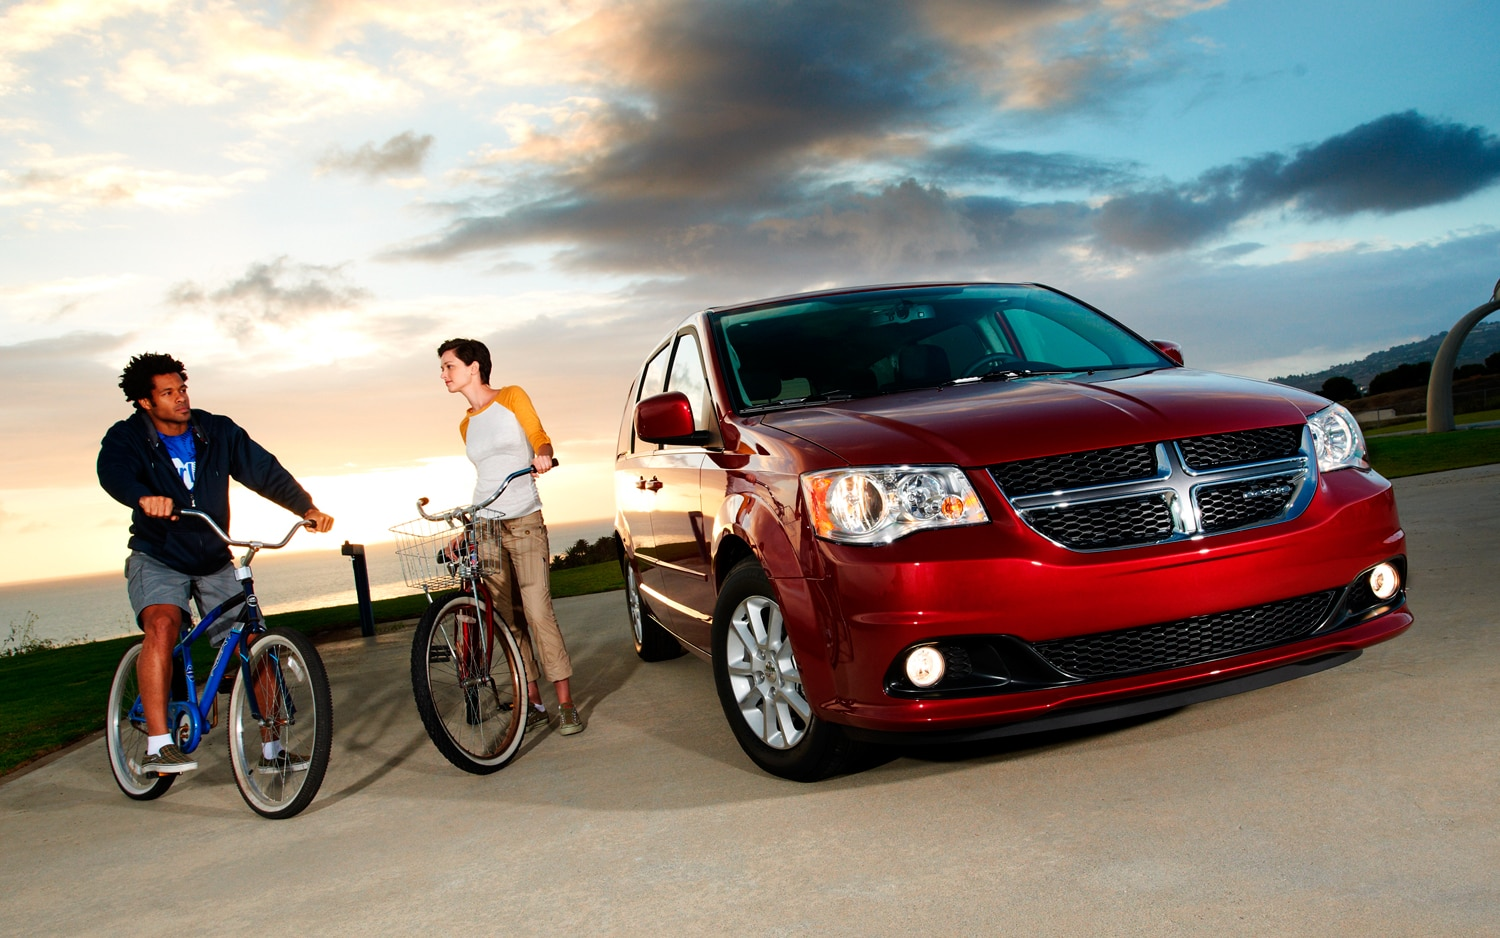 dodge to replace grand caravan with crossover debut compact sedan in january. Black Bedroom Furniture Sets. Home Design Ideas